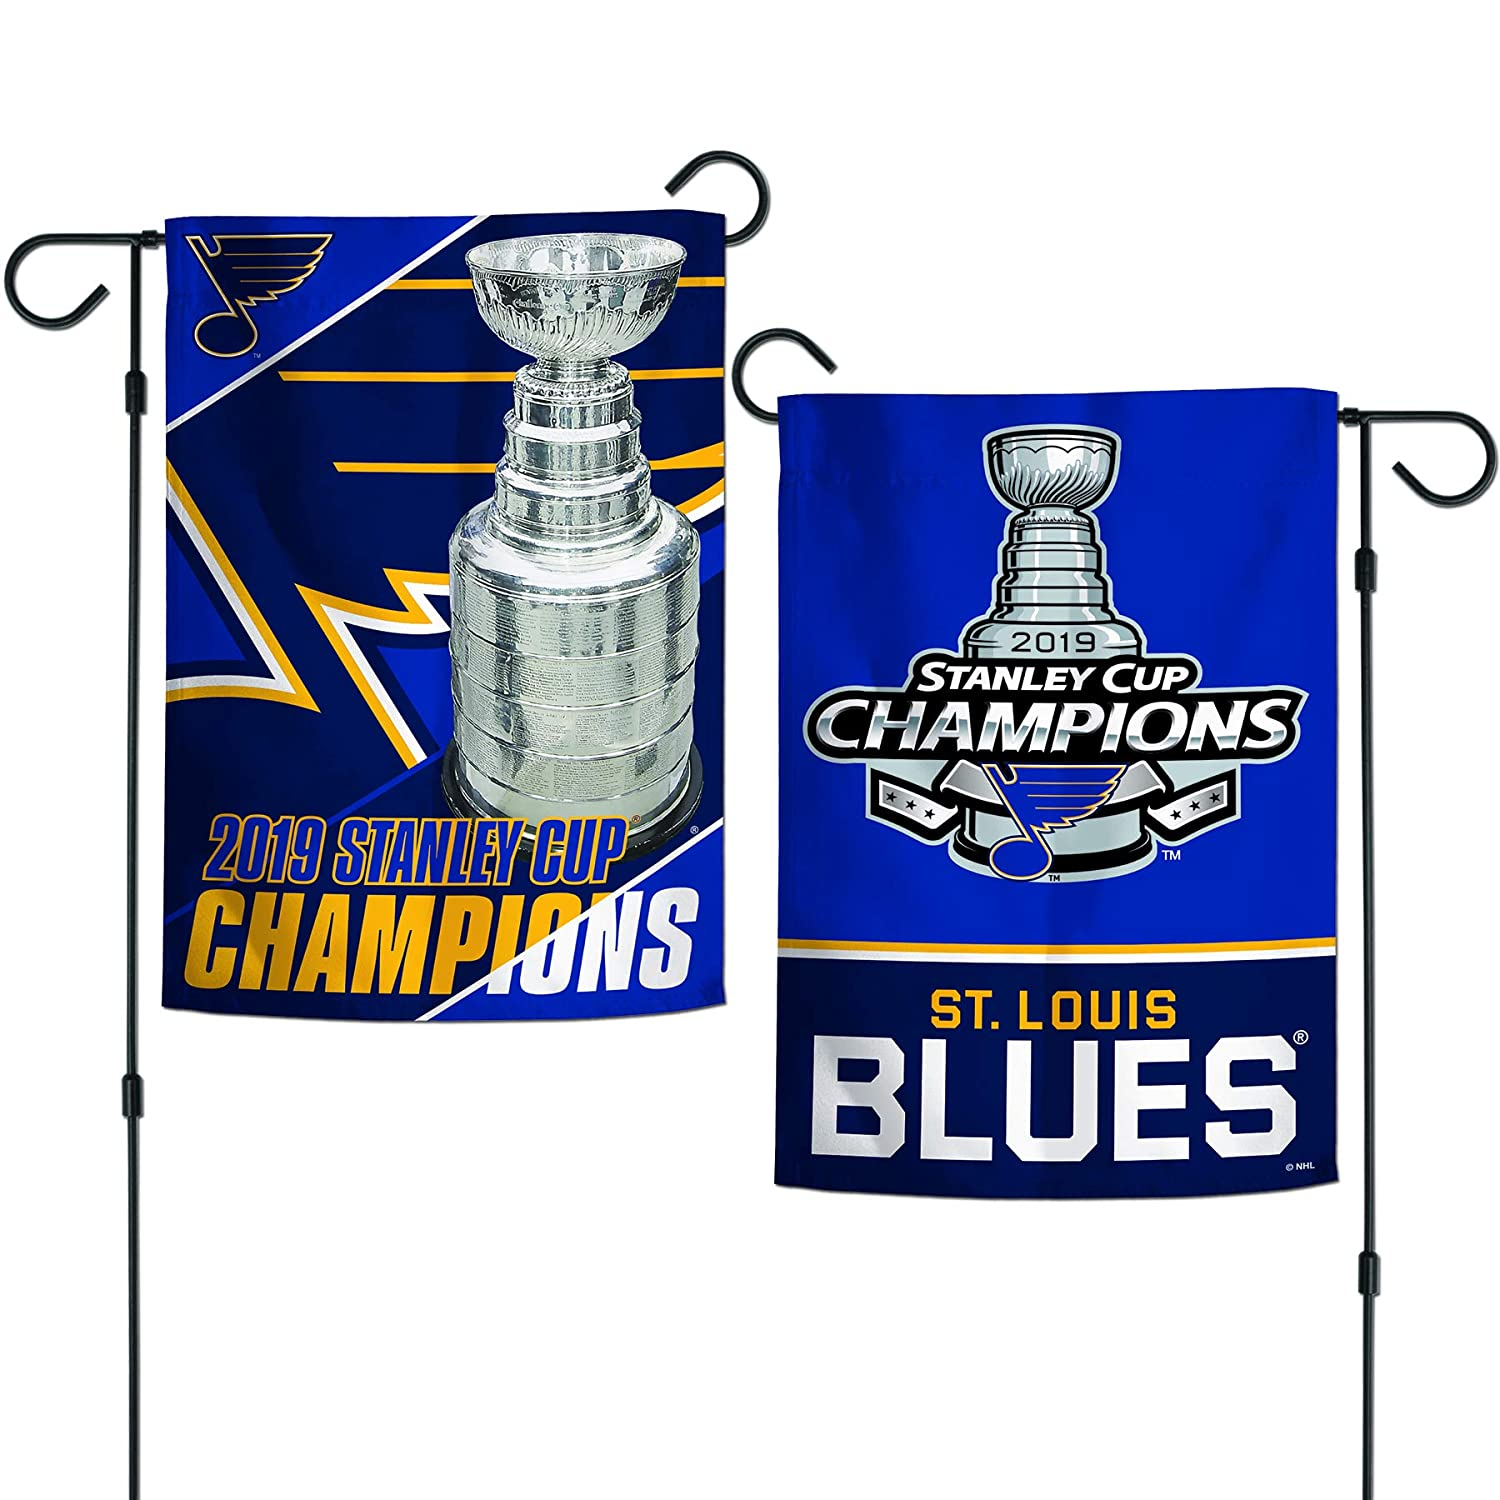 "WinCraft St. Louis Blues 2019 Stanley Cup Champions Garden Flag 2 Sided 12.5"" x 18"""